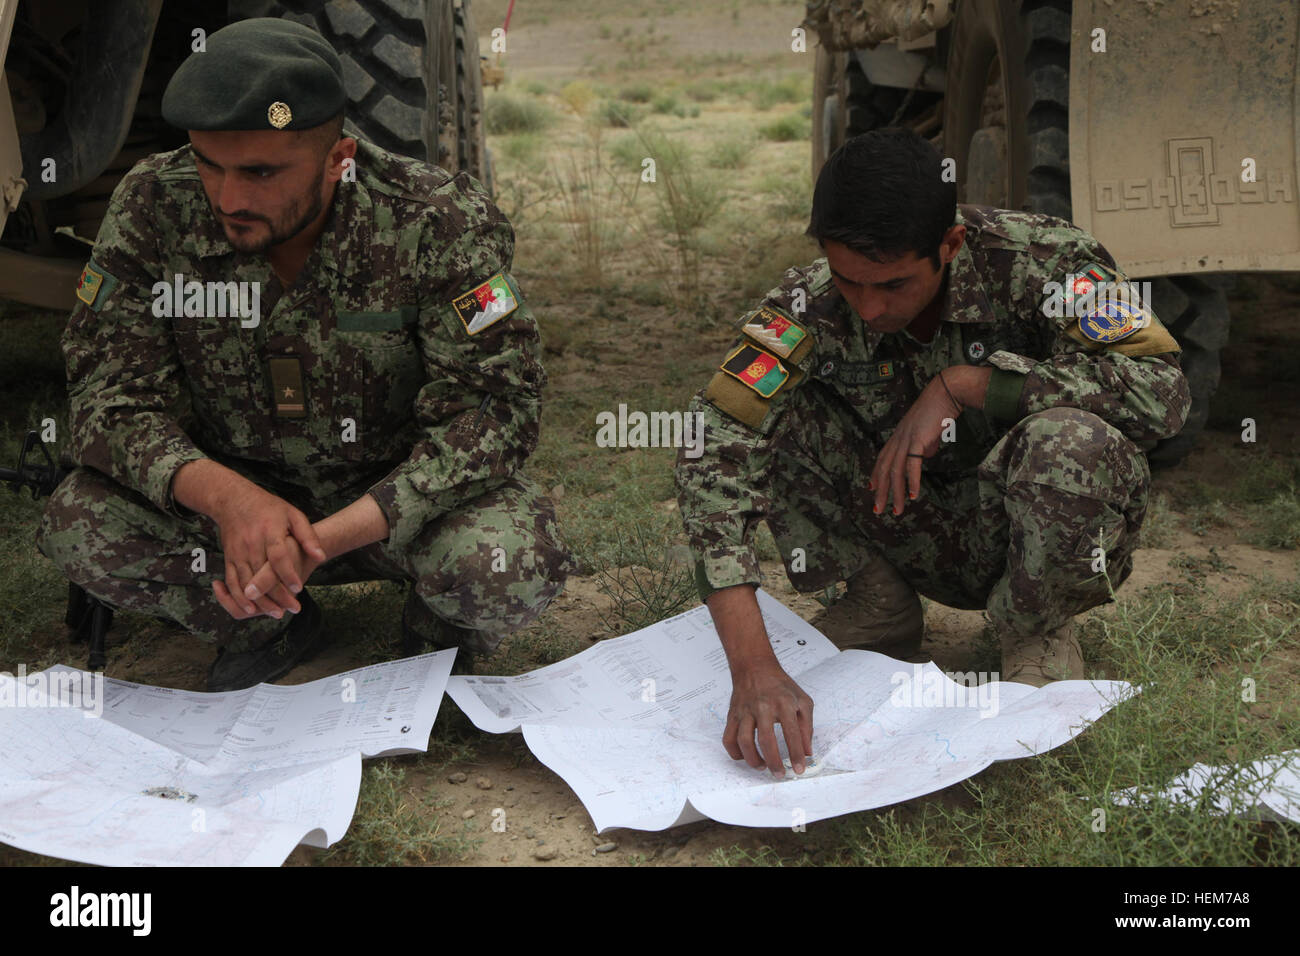 Afghan National Army Soldiers Conduct Map Reading Training In - Us army map reading